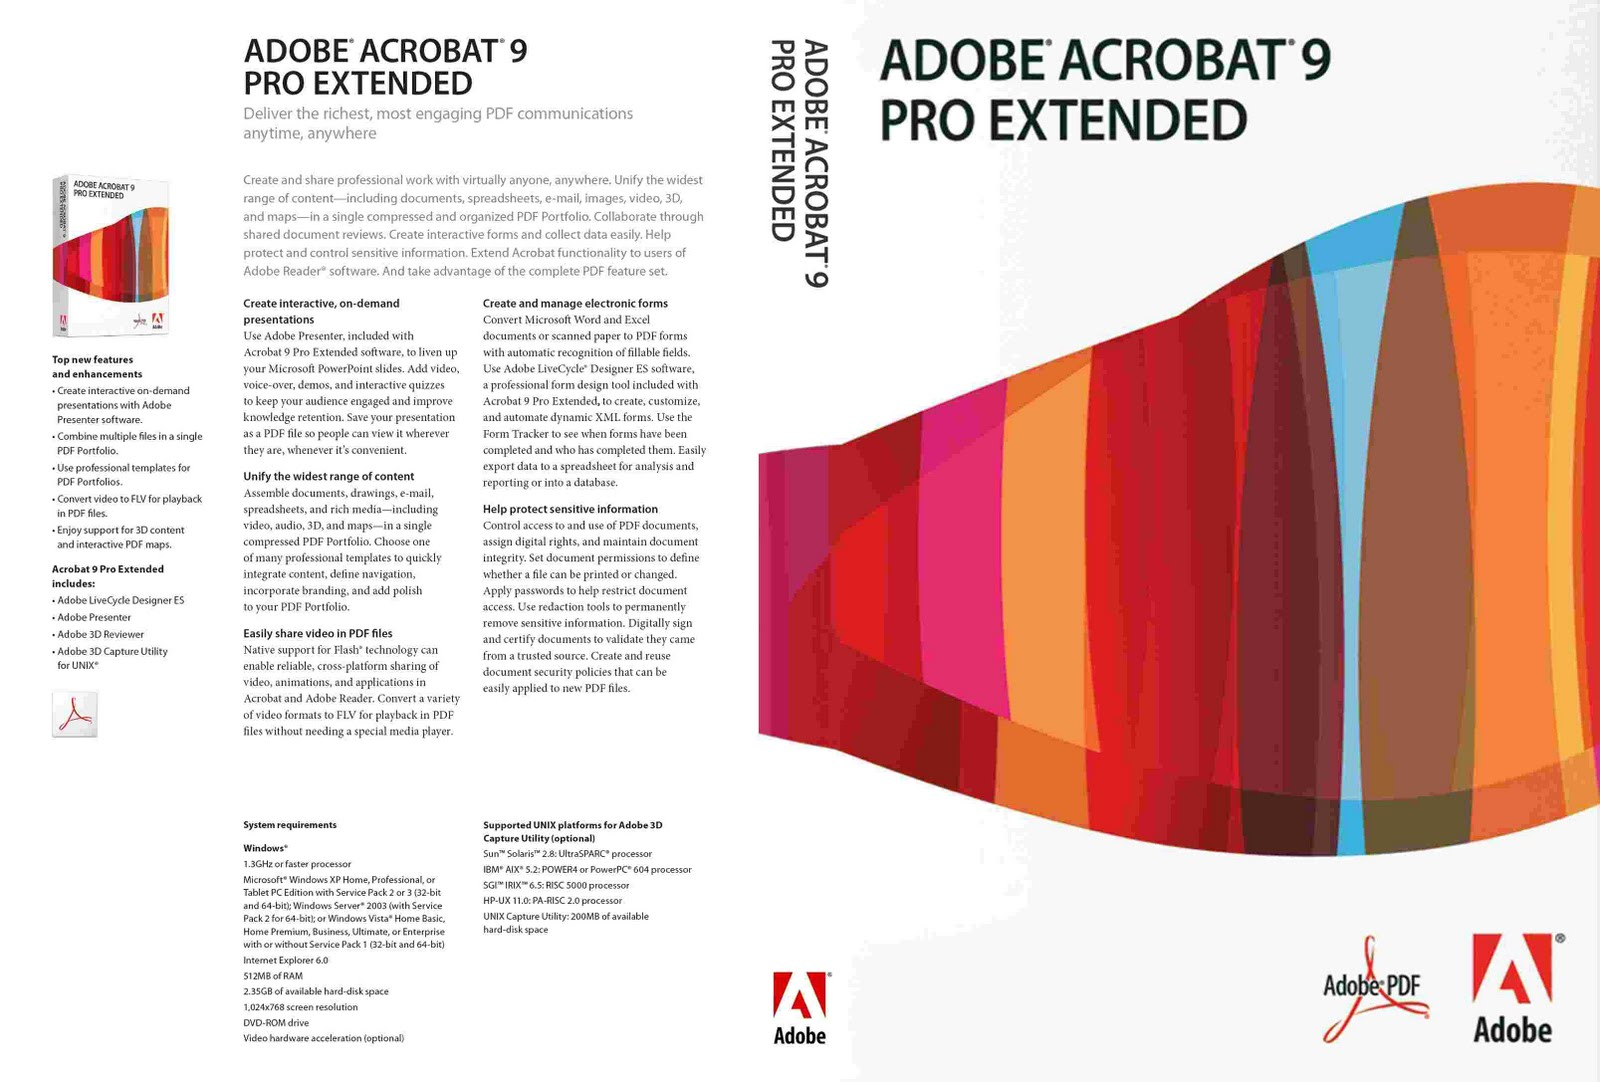 Adobe acrobat 9 pro extended direct install problems